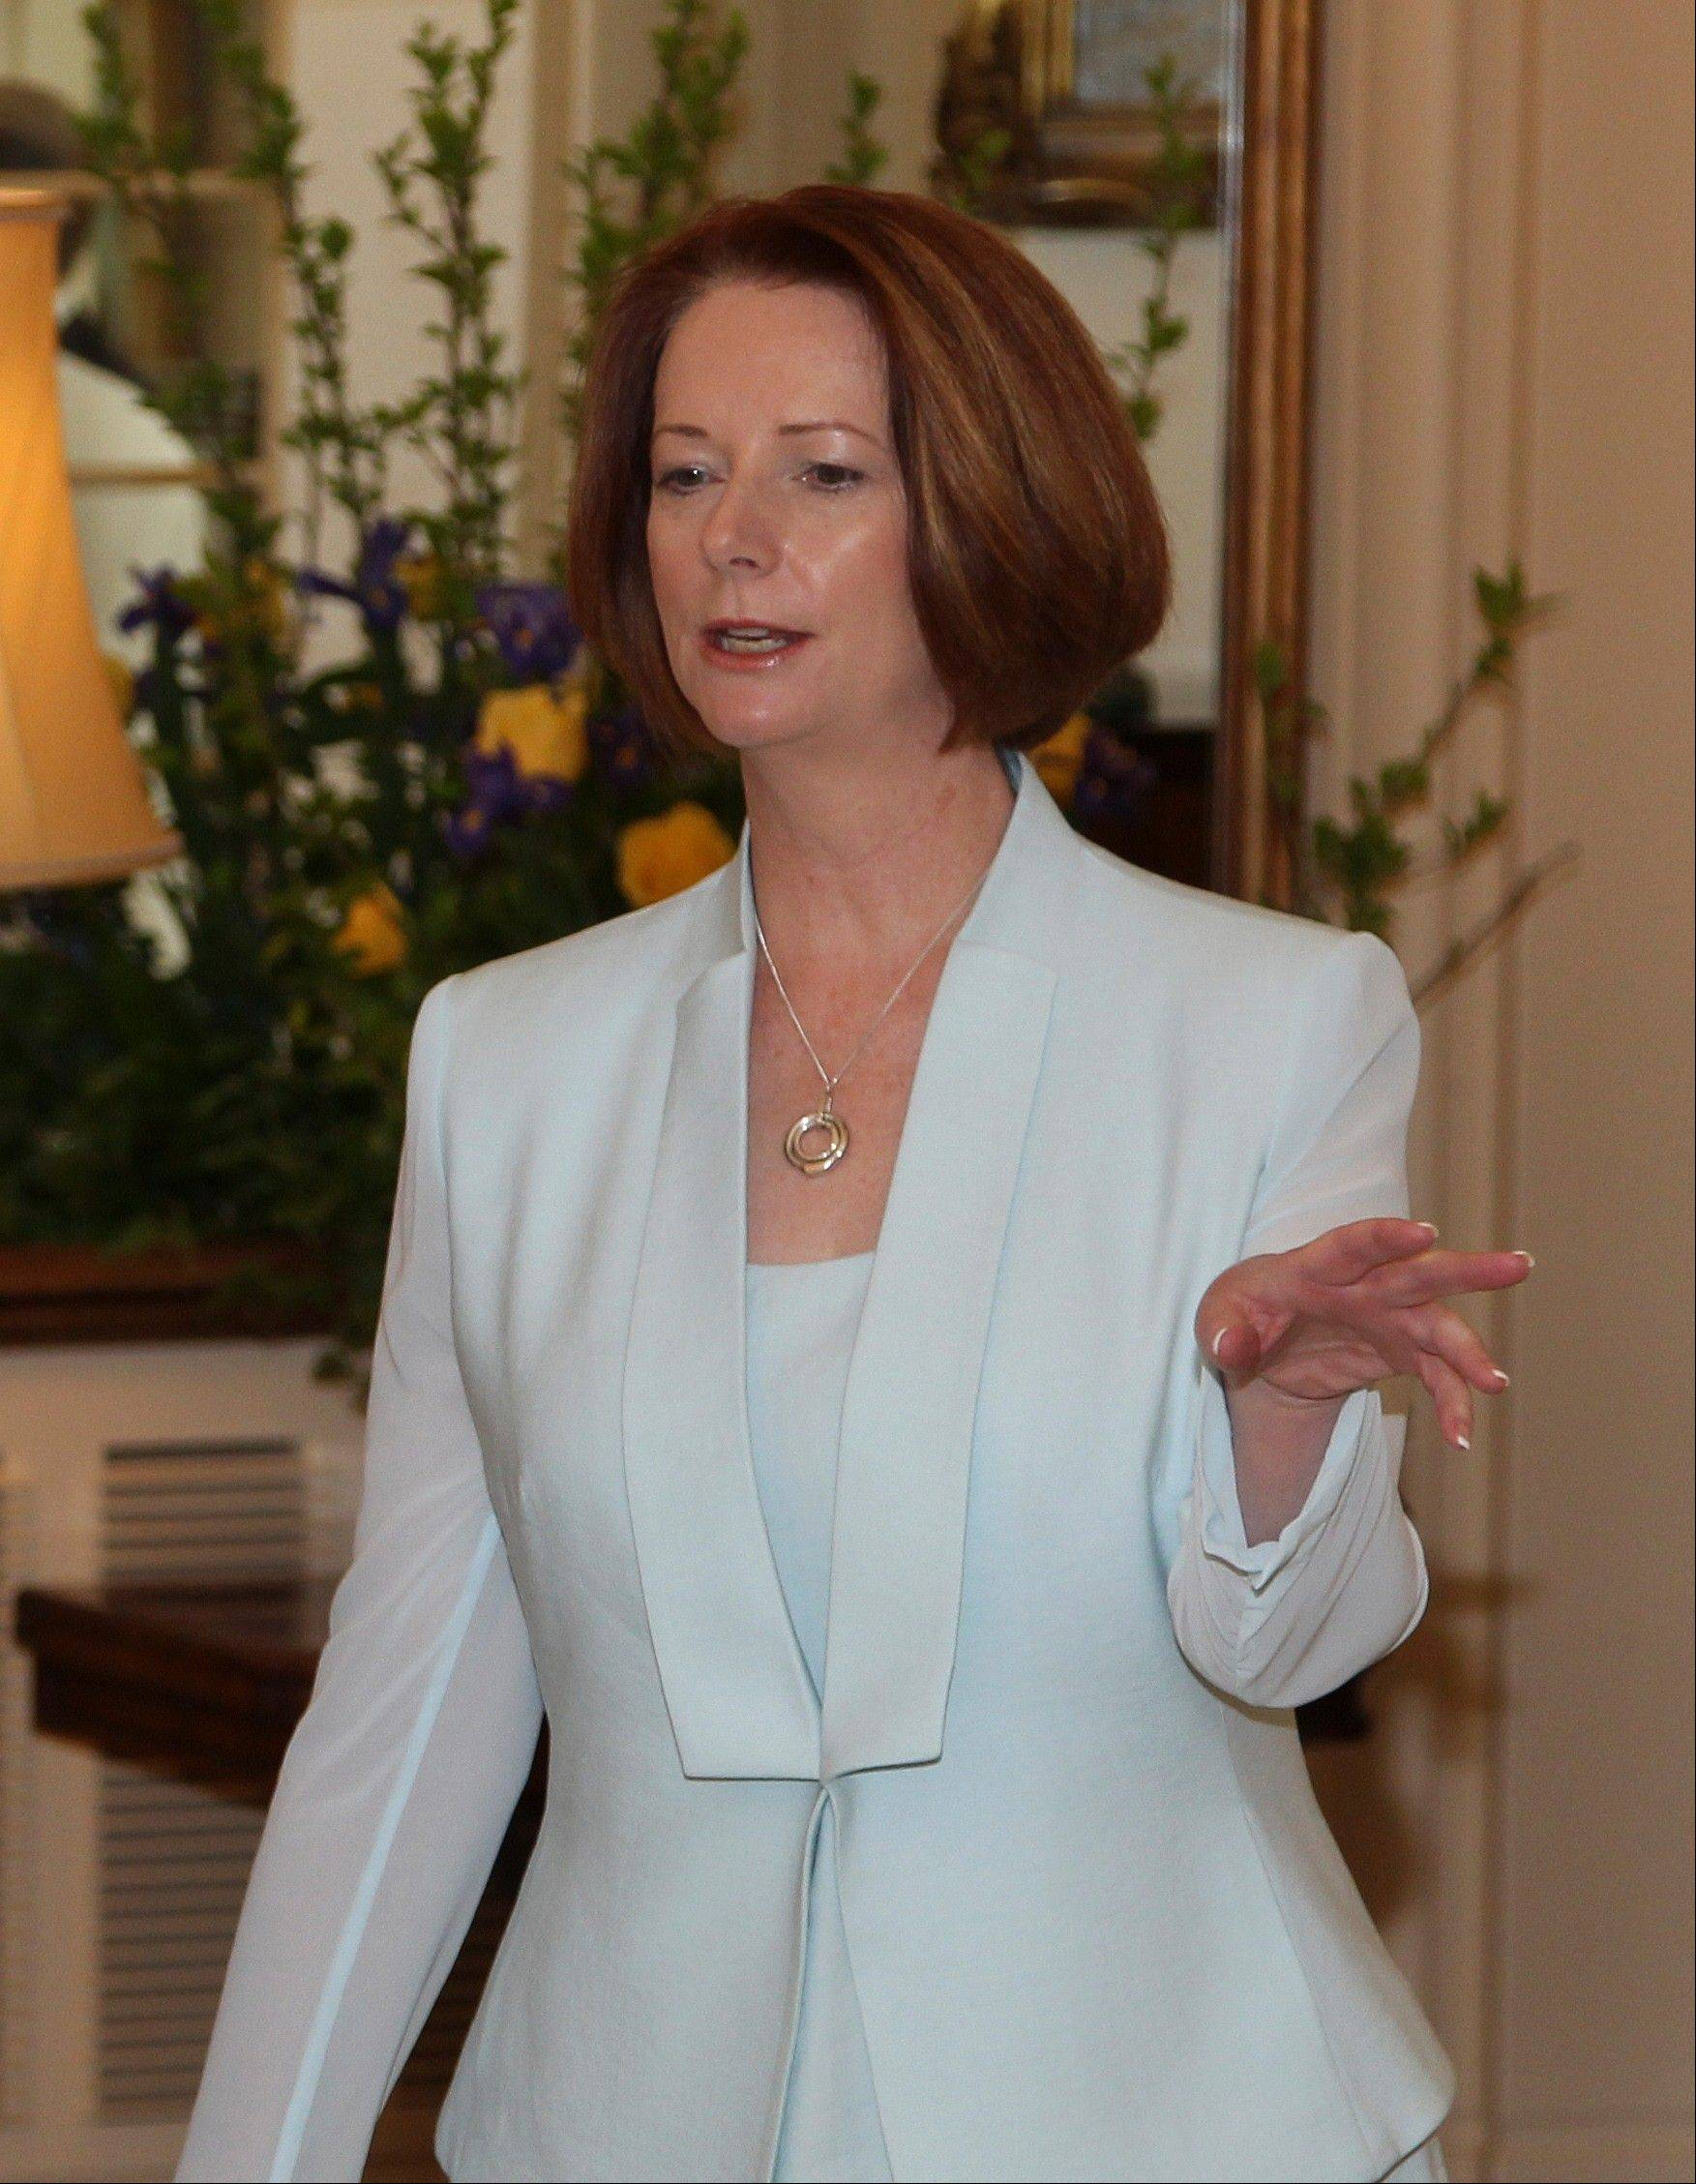 Australian Prime Minister Julia Gillard ordered a federal inquiry Monday into allegations of child sex abuse in state and religious institutions and community groups following a string of sexual abuse accusations against priests and claims of a Catholic Church cover-up.